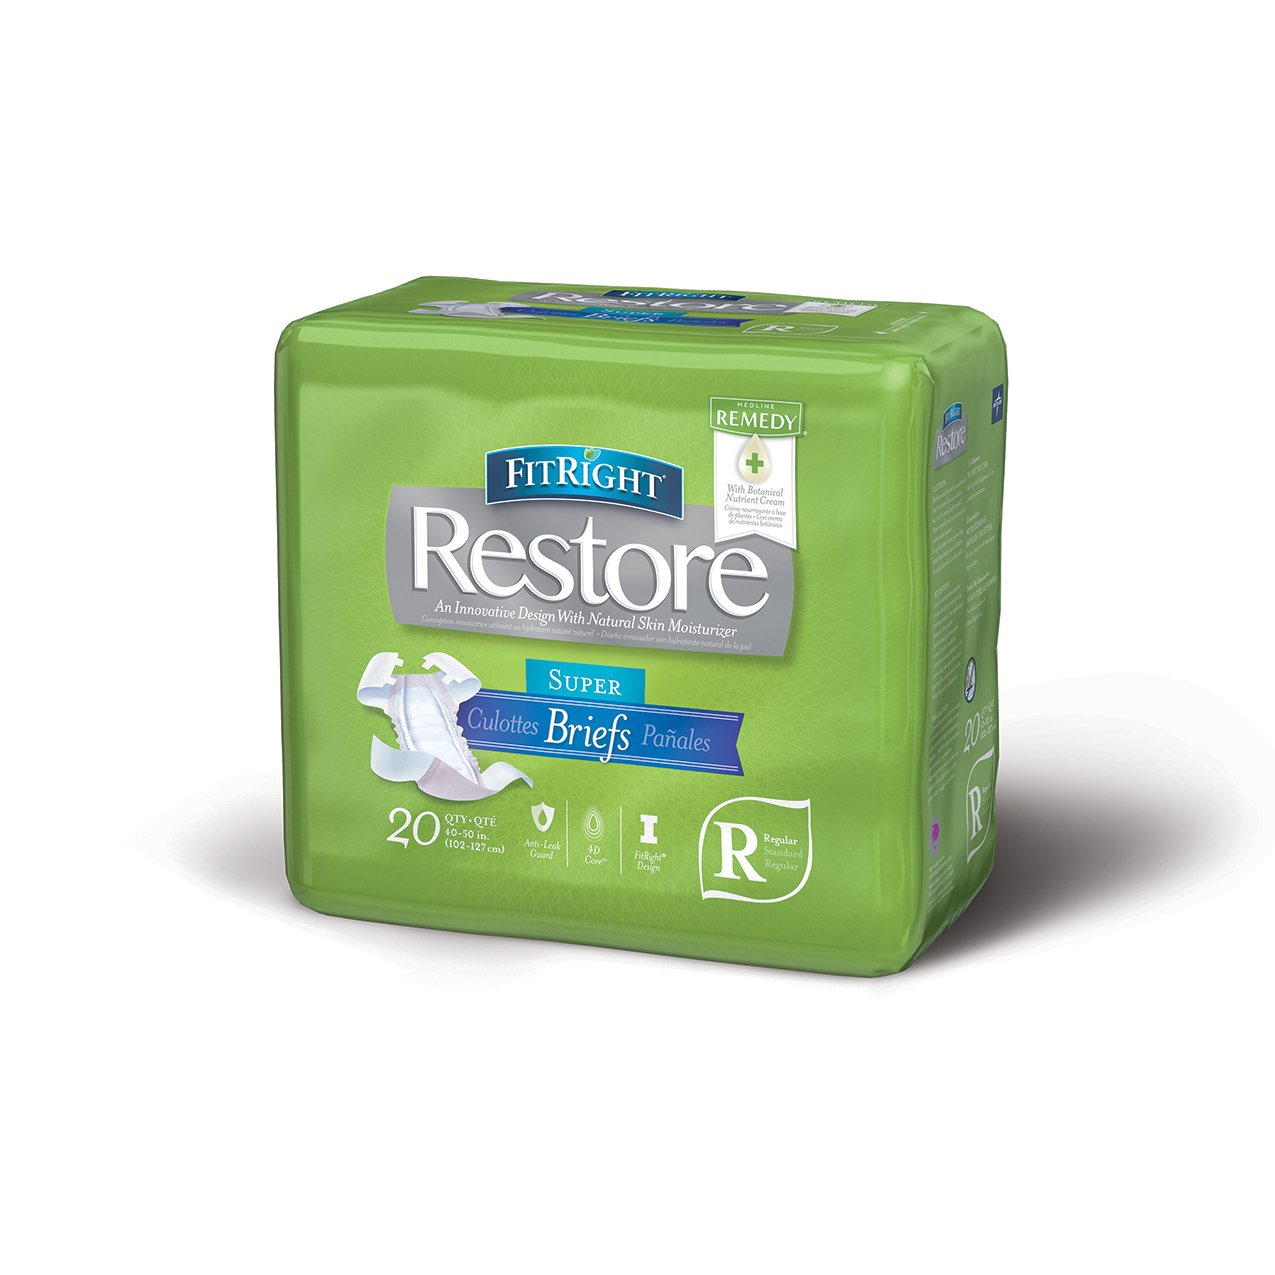 Amazon.com: FitRight Restore Adult Briefs with Tabs, Maximum Absorbency, Medium, 32